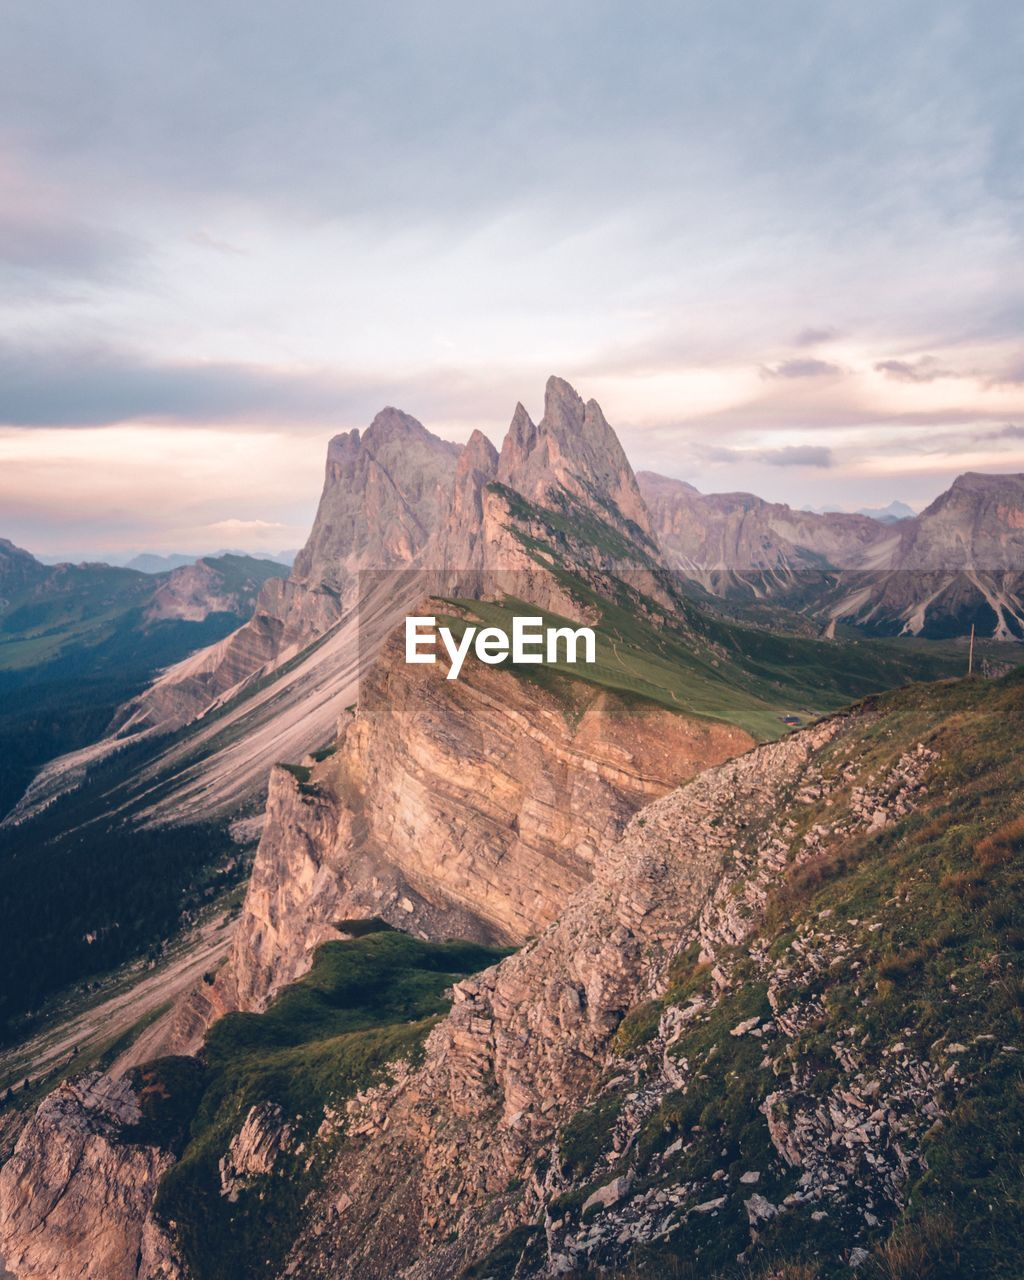 scenics - nature, sky, tranquil scene, beauty in nature, environment, mountain, landscape, cloud - sky, tranquility, non-urban scene, mountain range, nature, idyllic, no people, remote, day, land, outdoors, physical geography, rock, formation, mountain peak, eroded